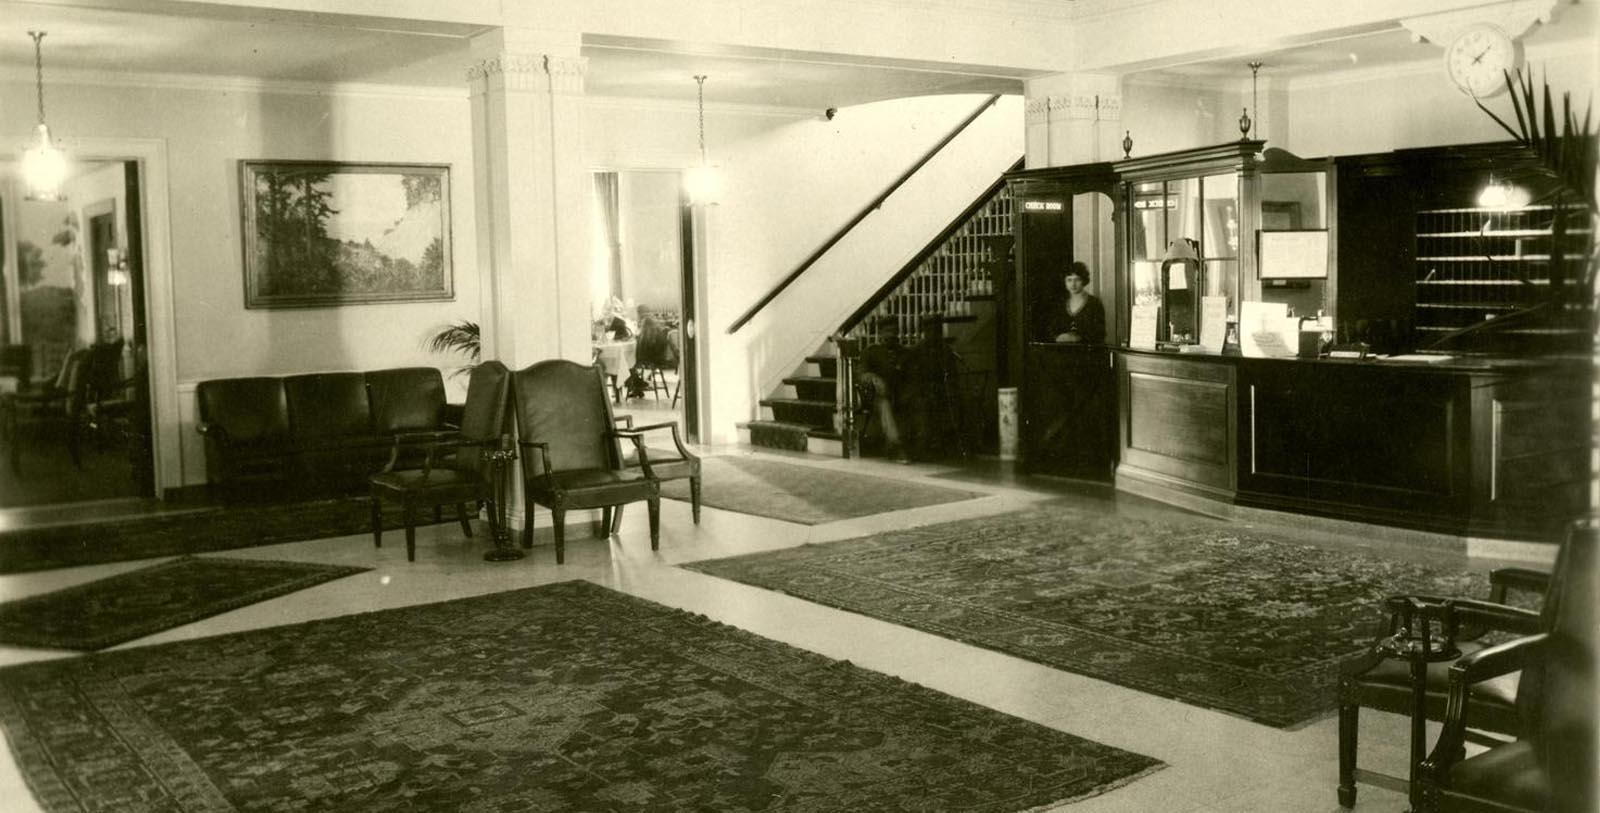 Historic image of lobby Hawthorne Hotel, 1925, Member of Historic Hotels of America, in Salem, Massachusetts, Discover